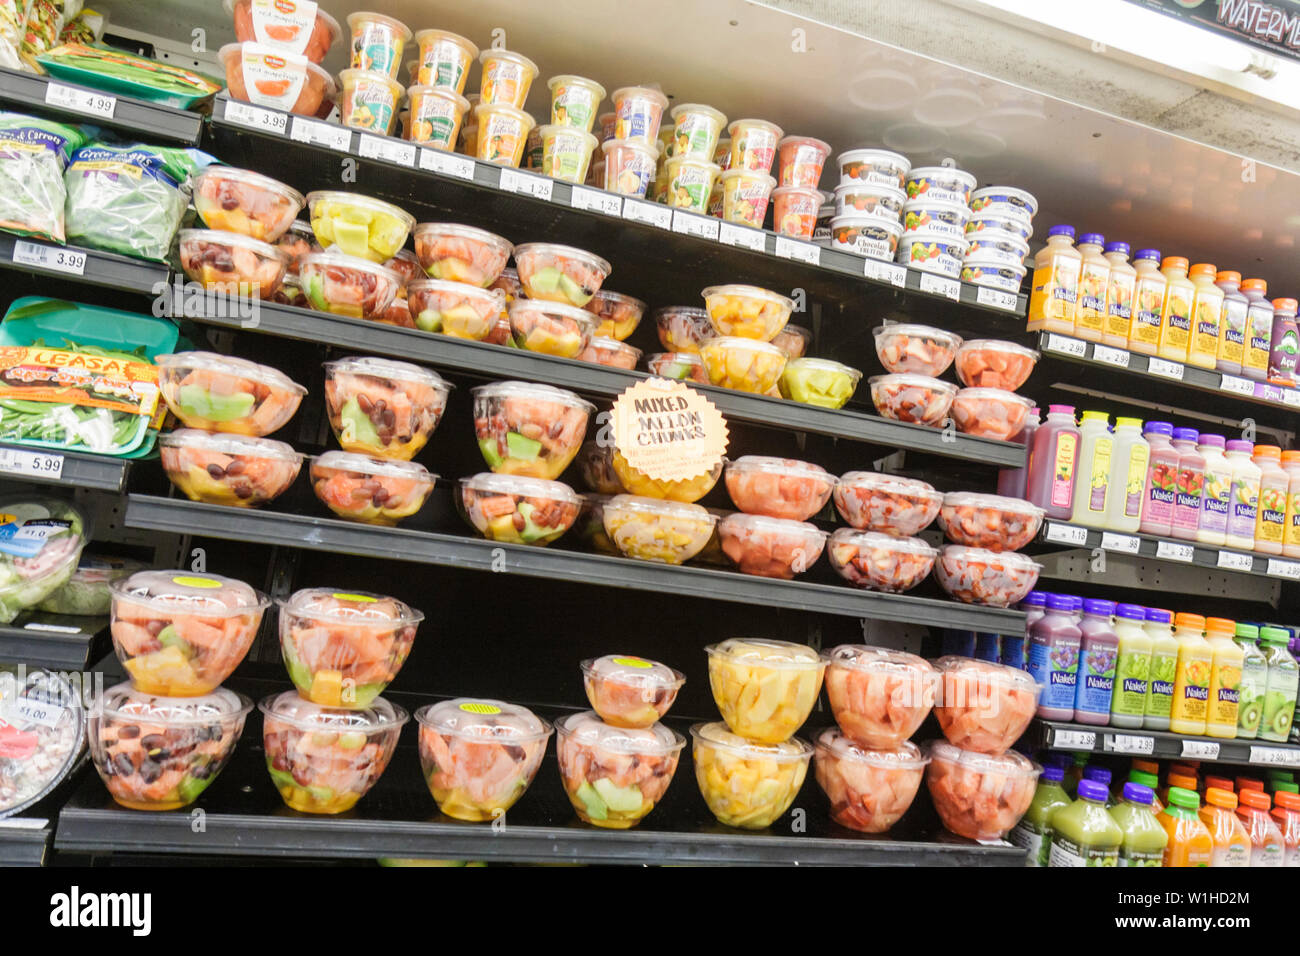 Fort Lauderdale Ft. Florida Winn-Dixie grocery store supermarket packaging product display competition prepared foods cut fruit Stock Photo